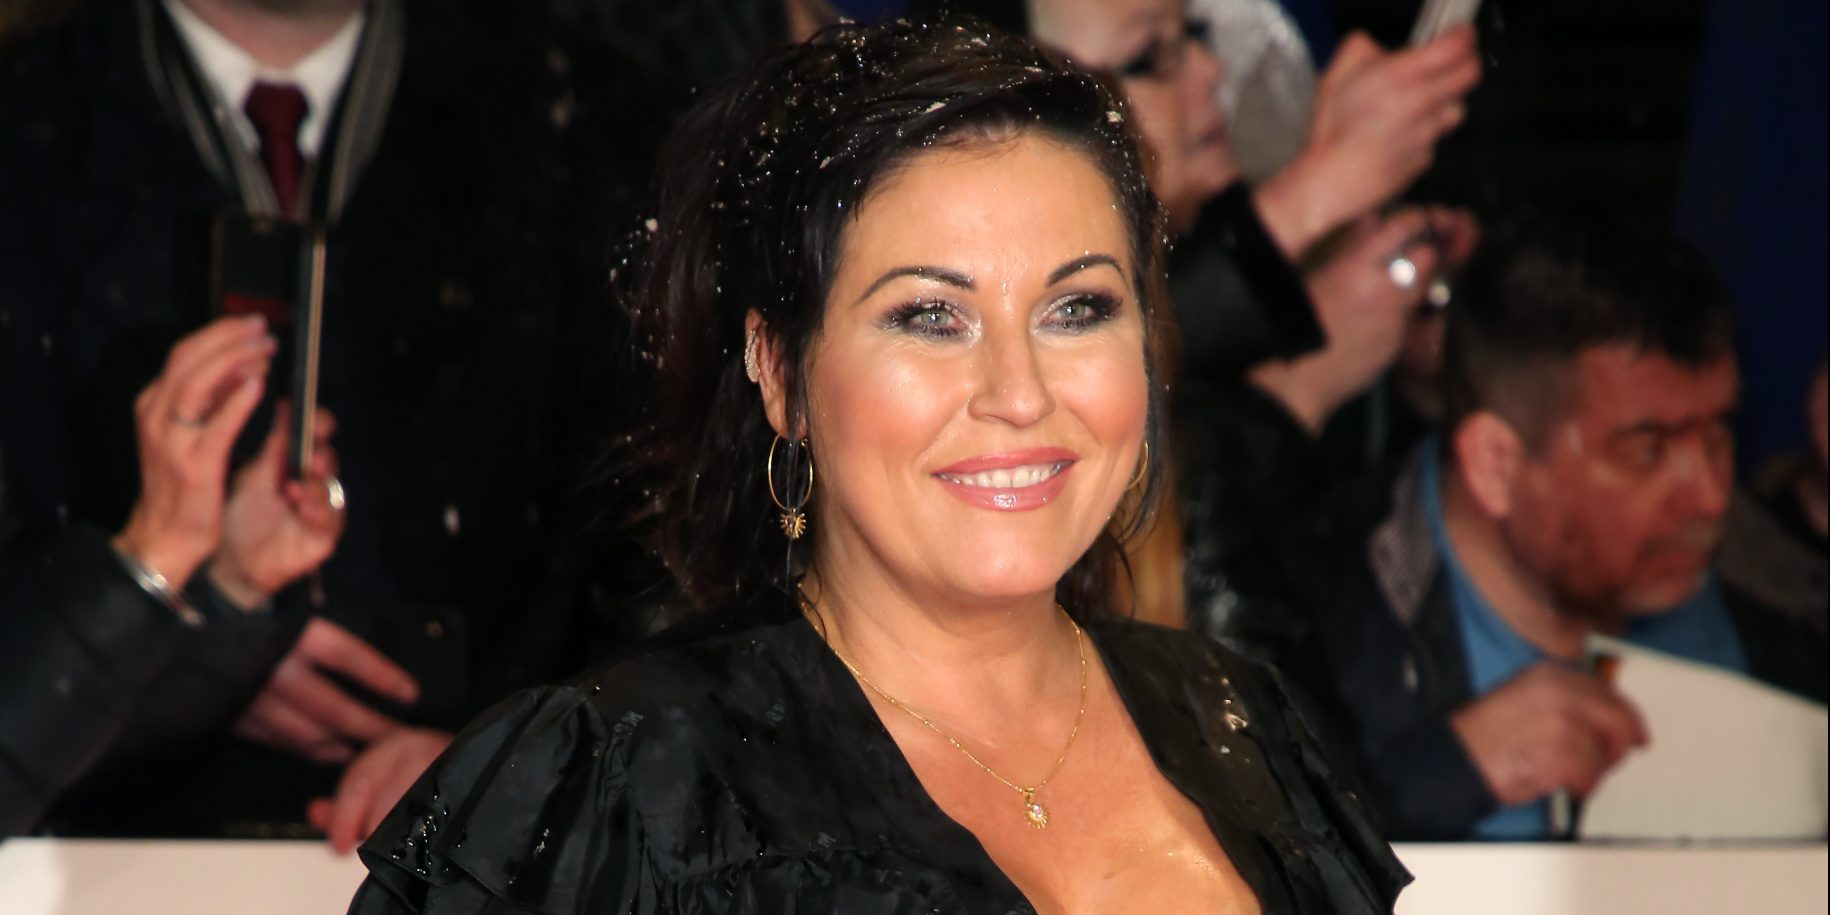 EastEnders' Jessie wallace takes pack of Dettol wipes on night out amid coronavirus pandemic